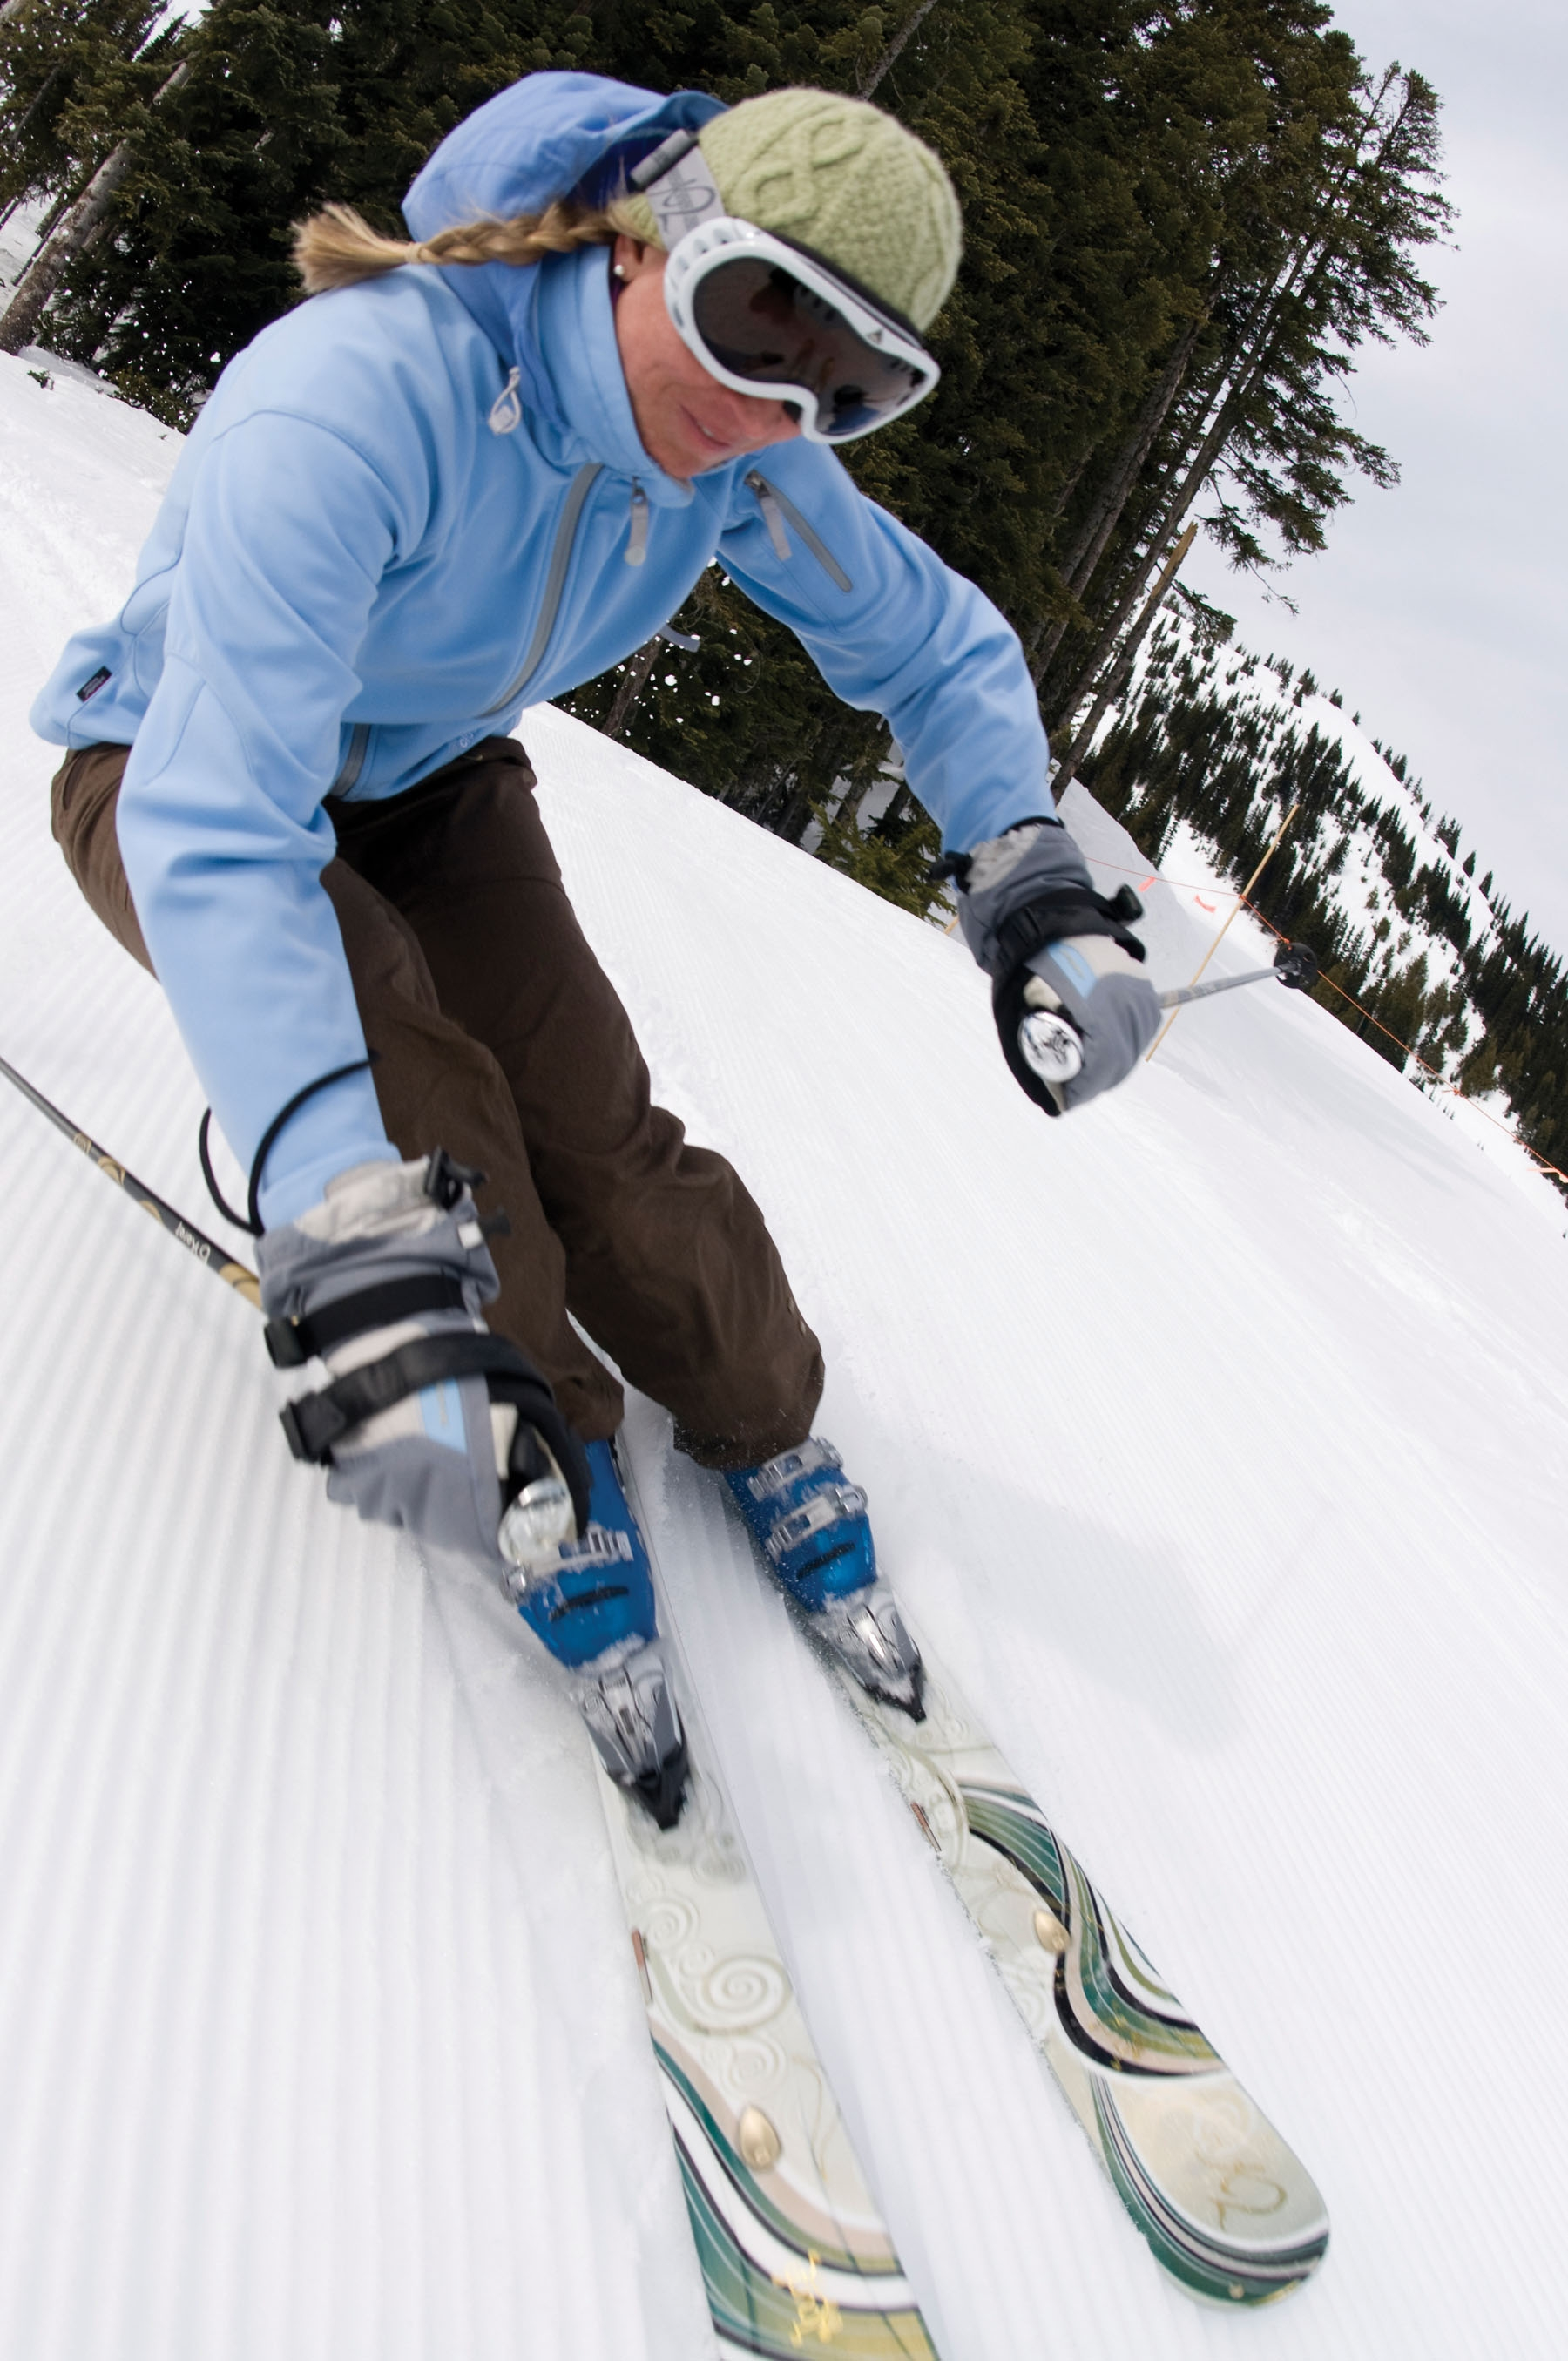 b39a7e652c Consider Renting Ski Equipment To Beat the Airline Baggage Fees ...